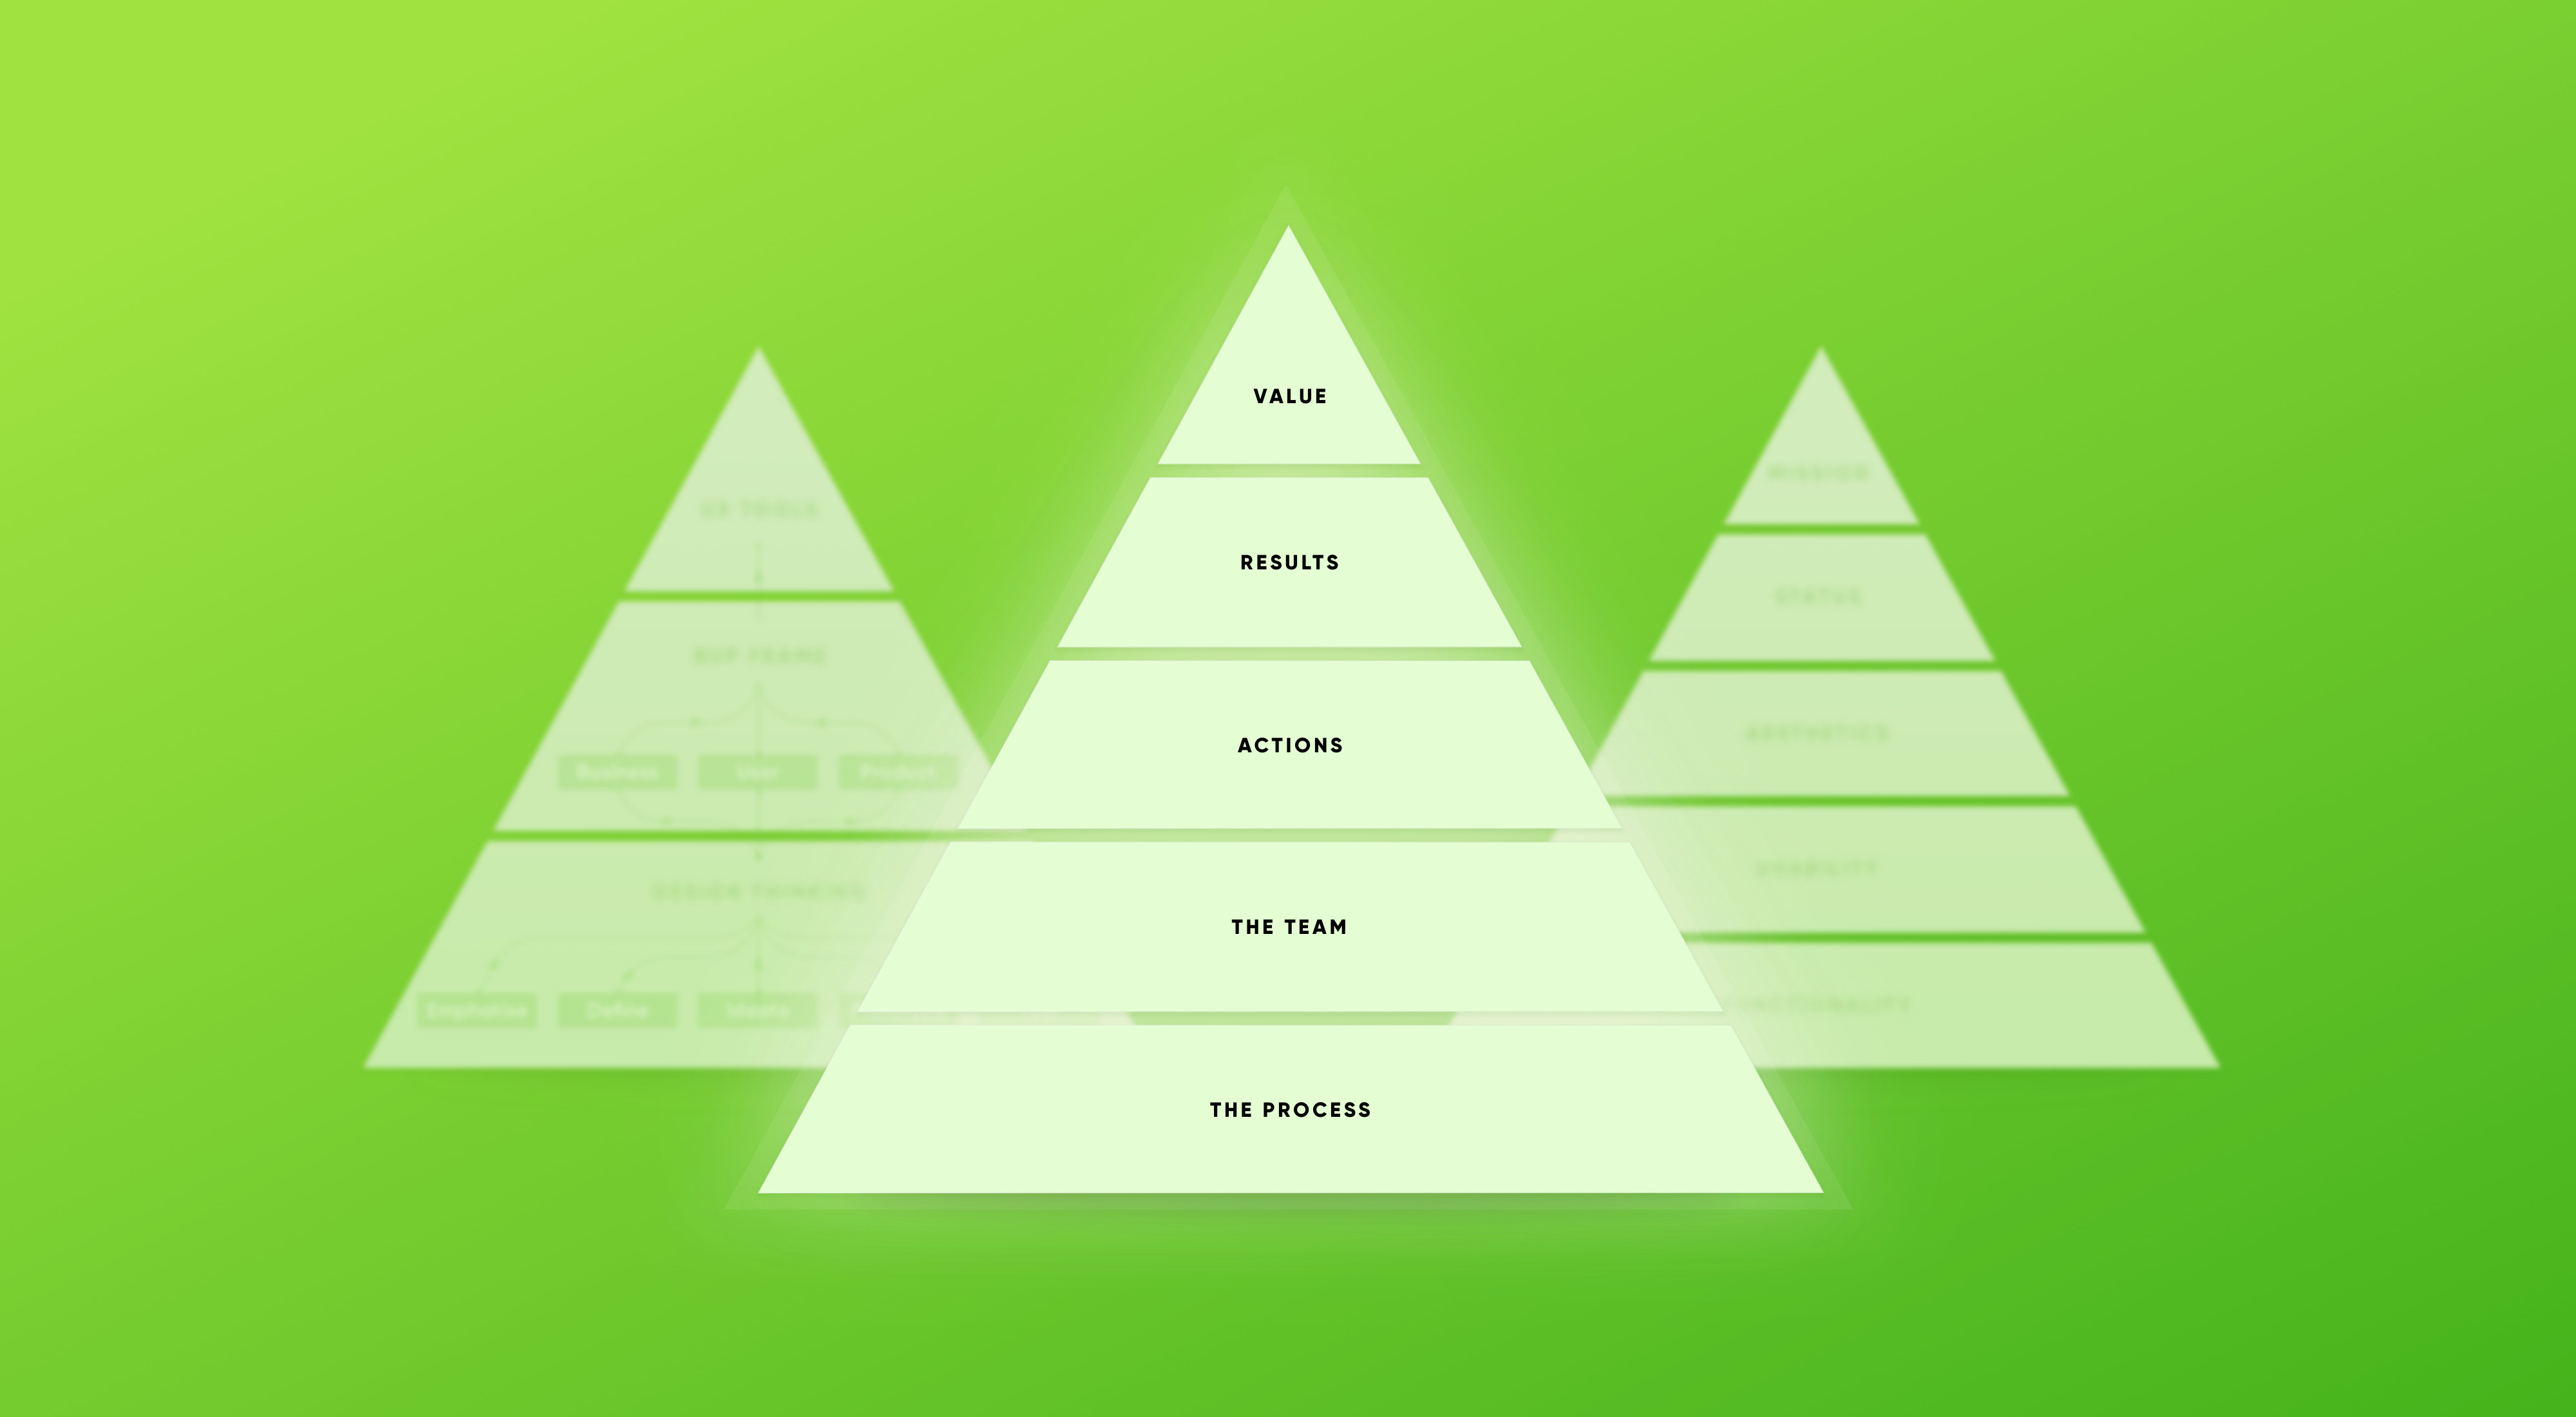 🎧 Financial UX Methodology: the Design Pyramid for Financial Product